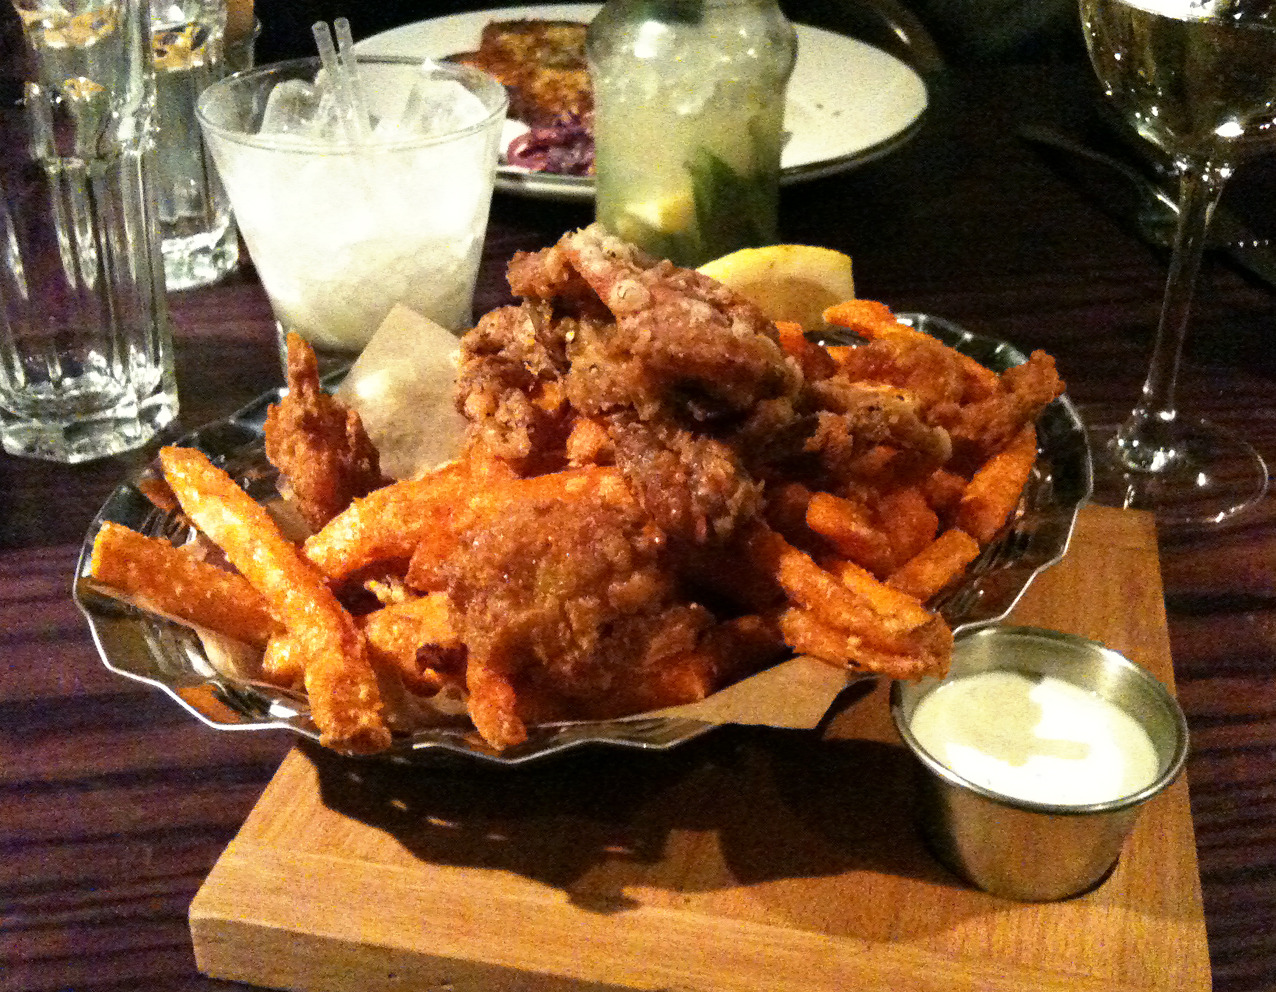 toph3r:  Soft shell crab & sweet potato fries.